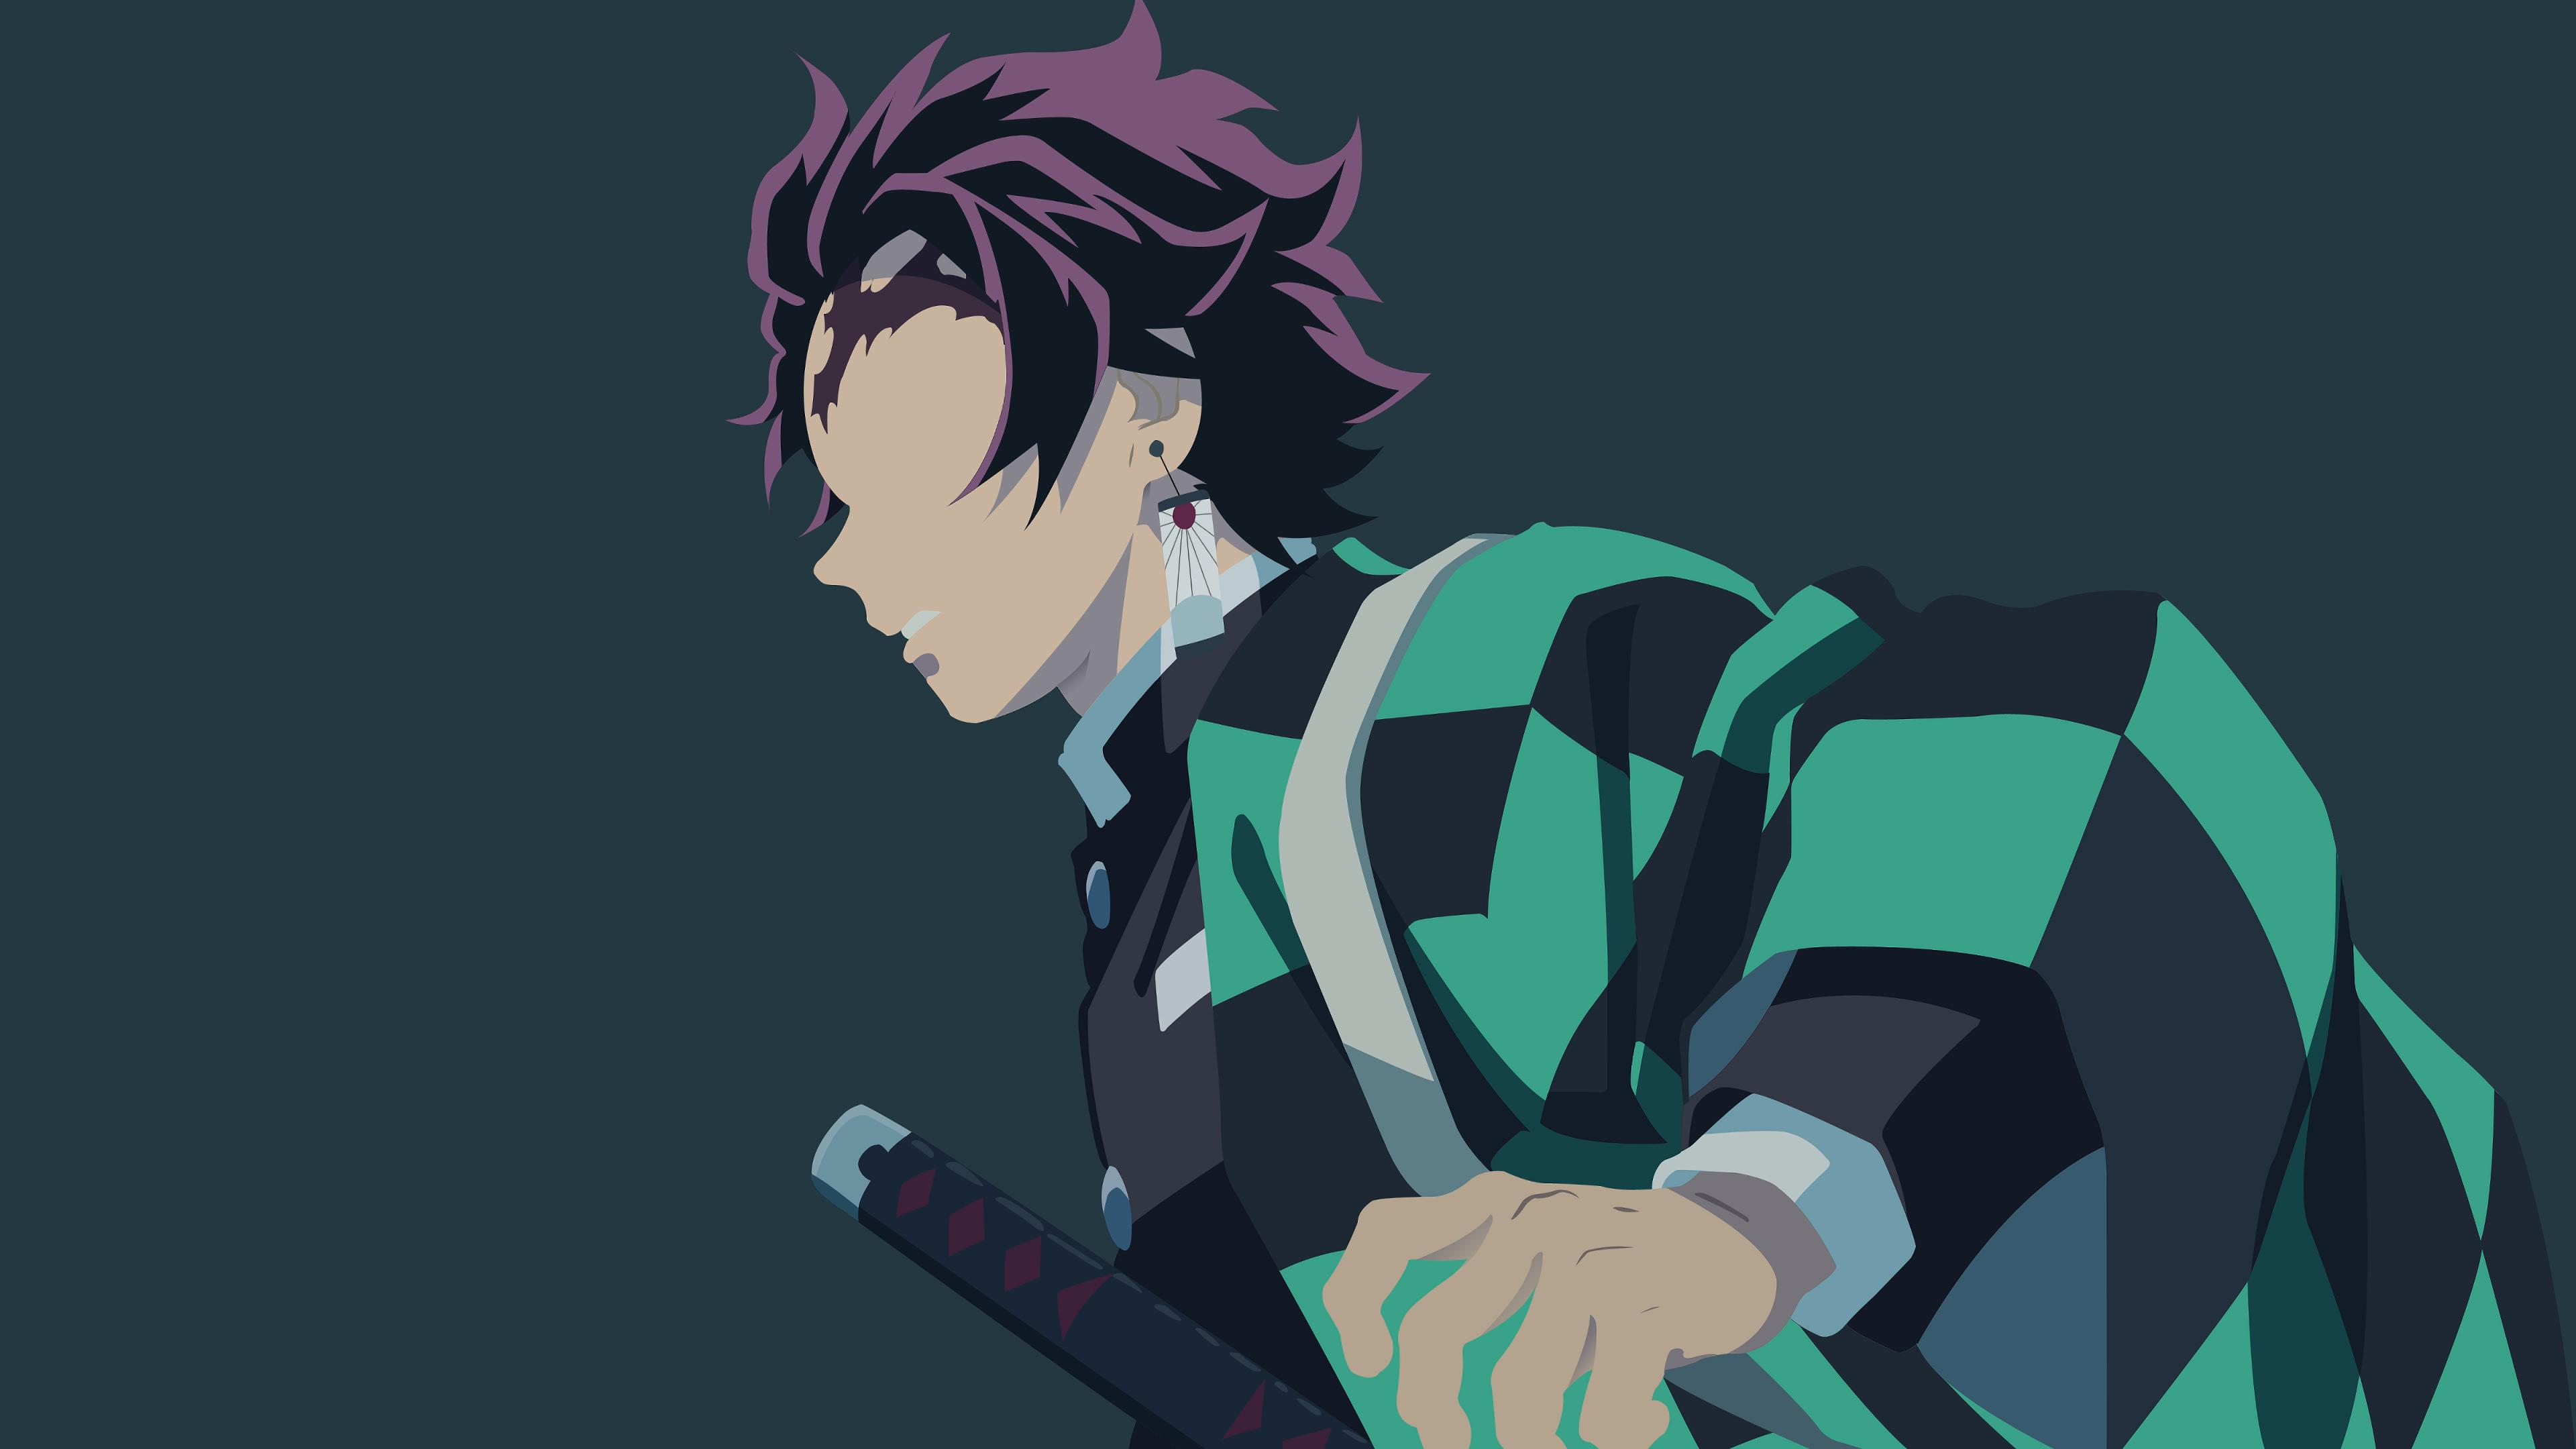 Demon Slayer Minimalist Wallpapers Top Free Demon Slayer Minimalist Backgrounds Wallpaperaccess